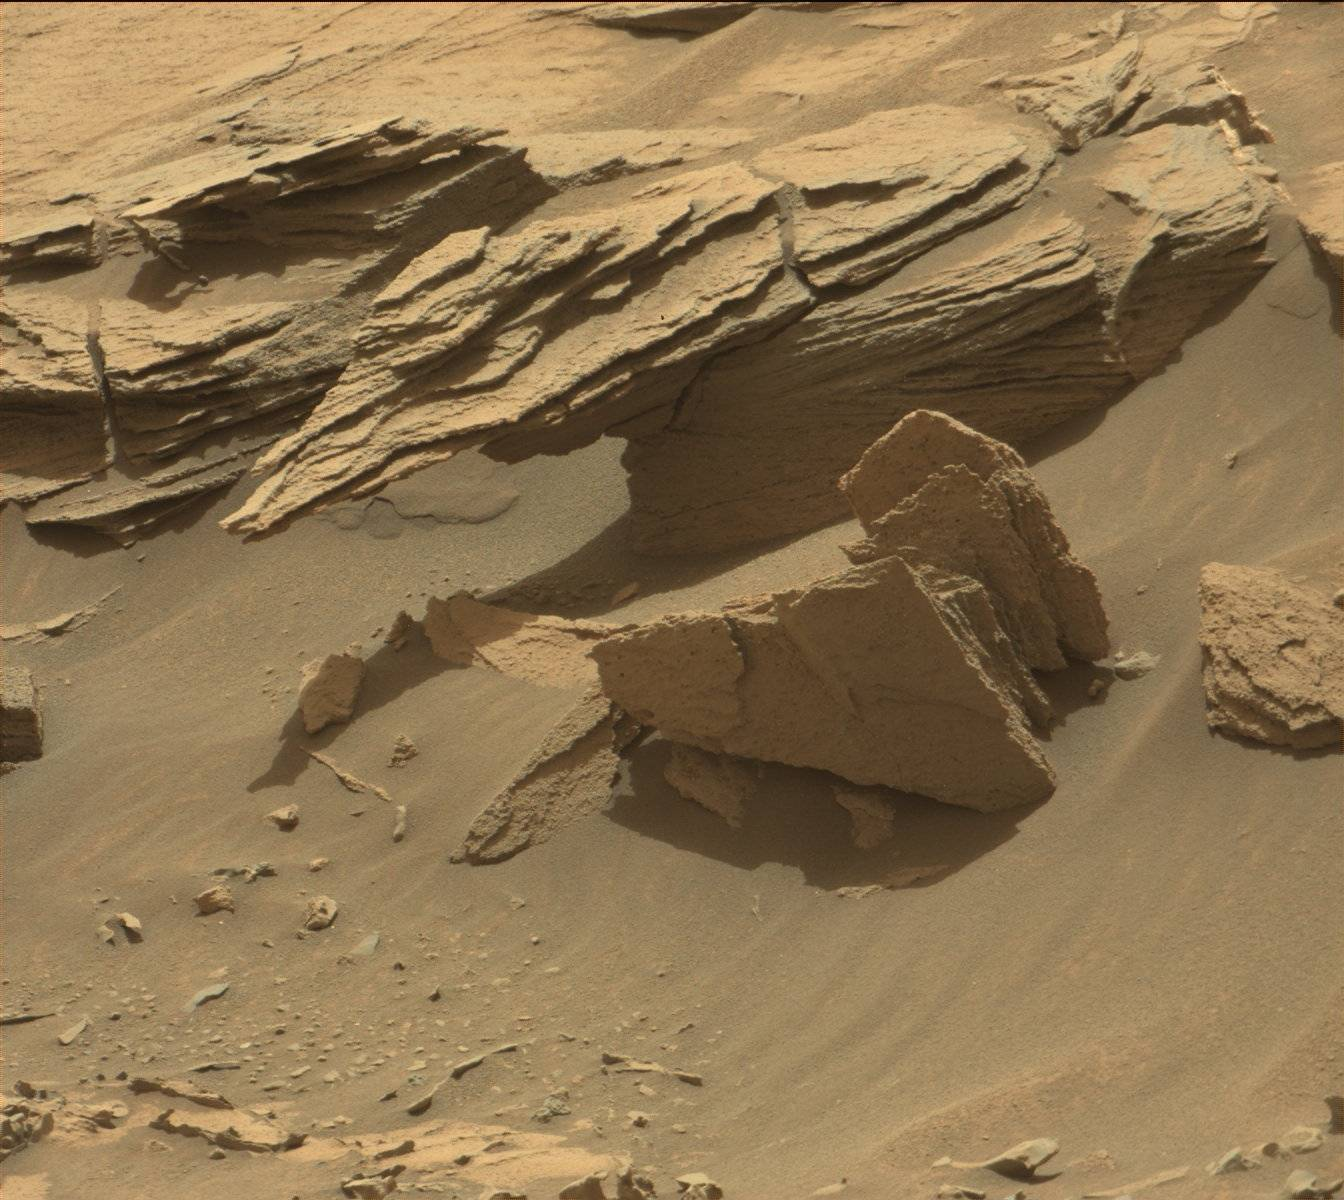 1033MR0045210570204216E01_DXXX – MSL – Mars Science Laboratory